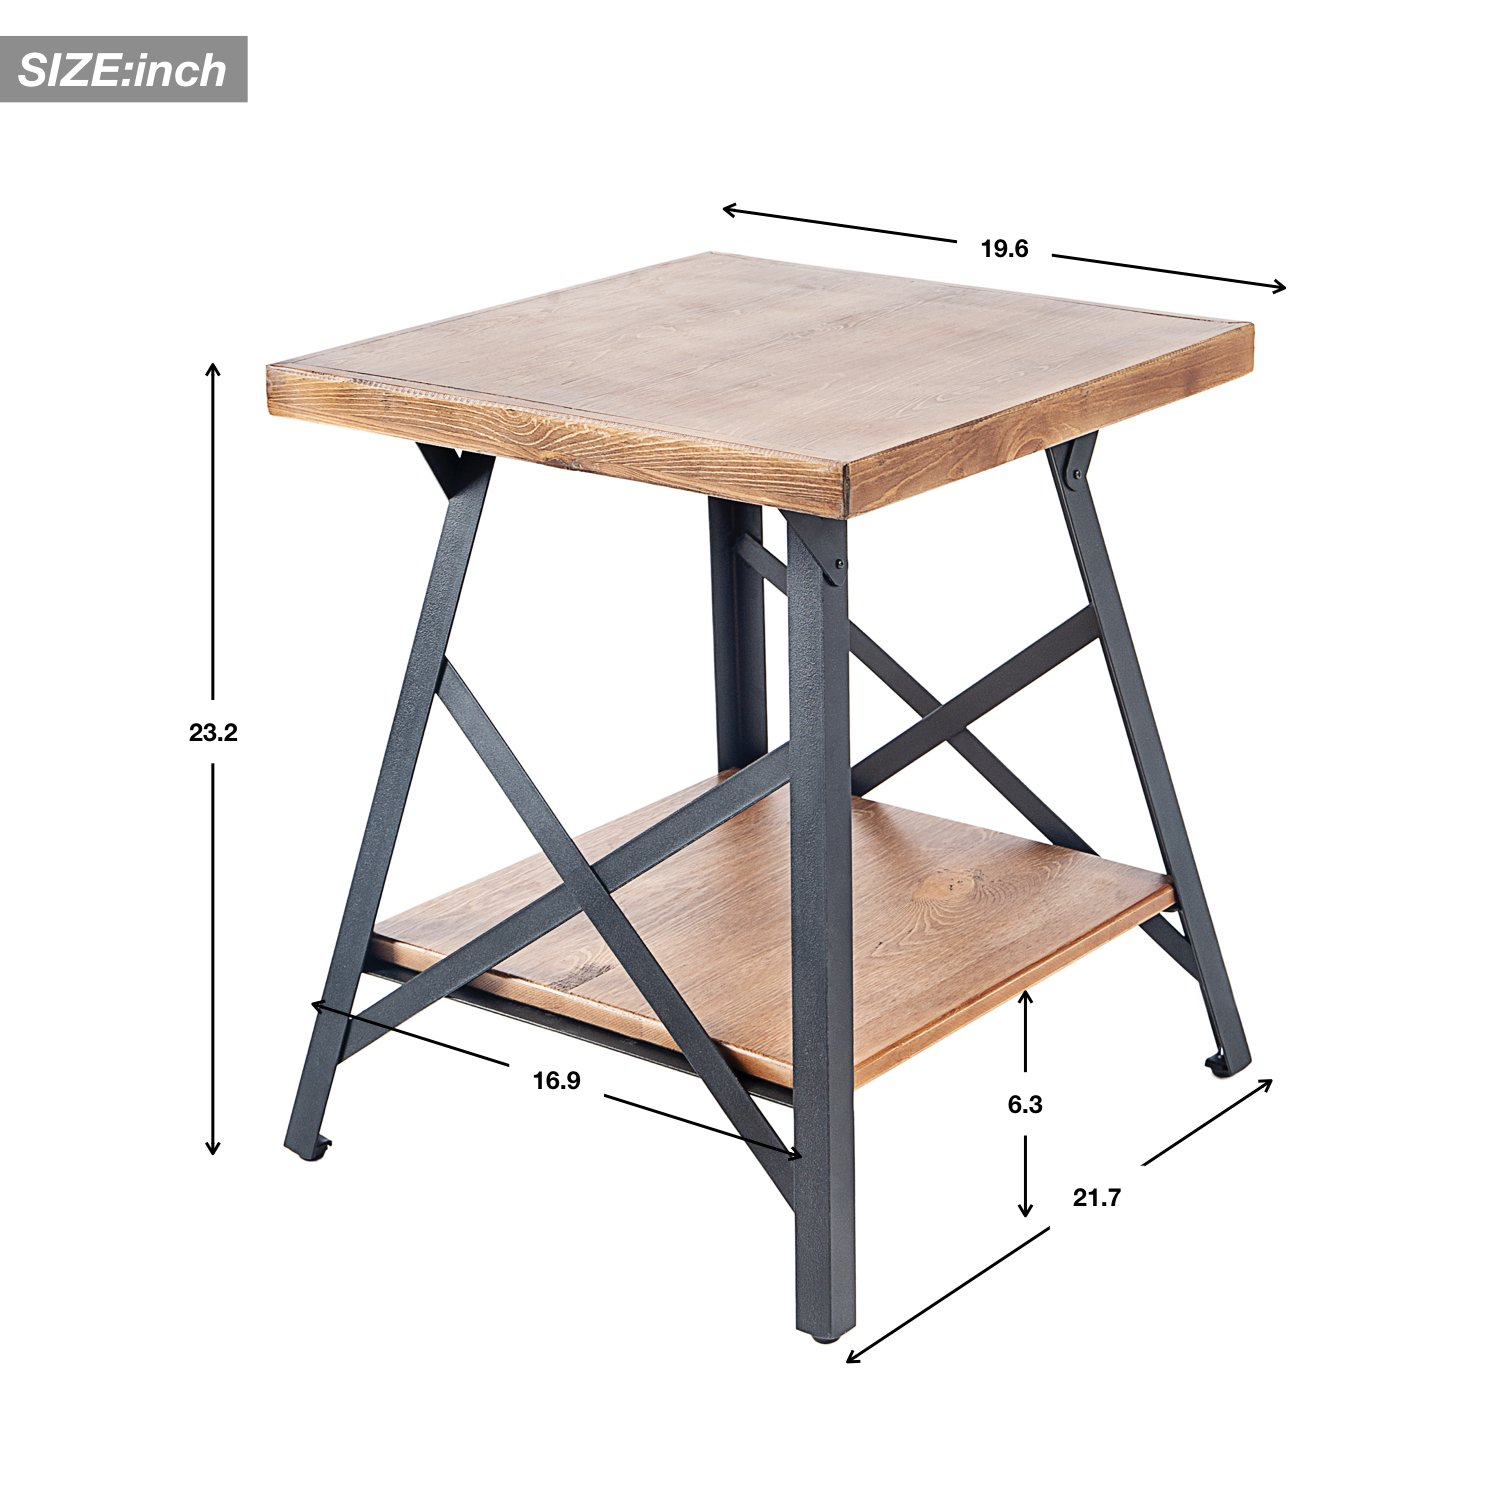 Harper&Bright Designs End Table with Metal Legs, Living Room Set, Solid Wood, Rustic (Brown) by Harper&Bright Designs (Image #5)